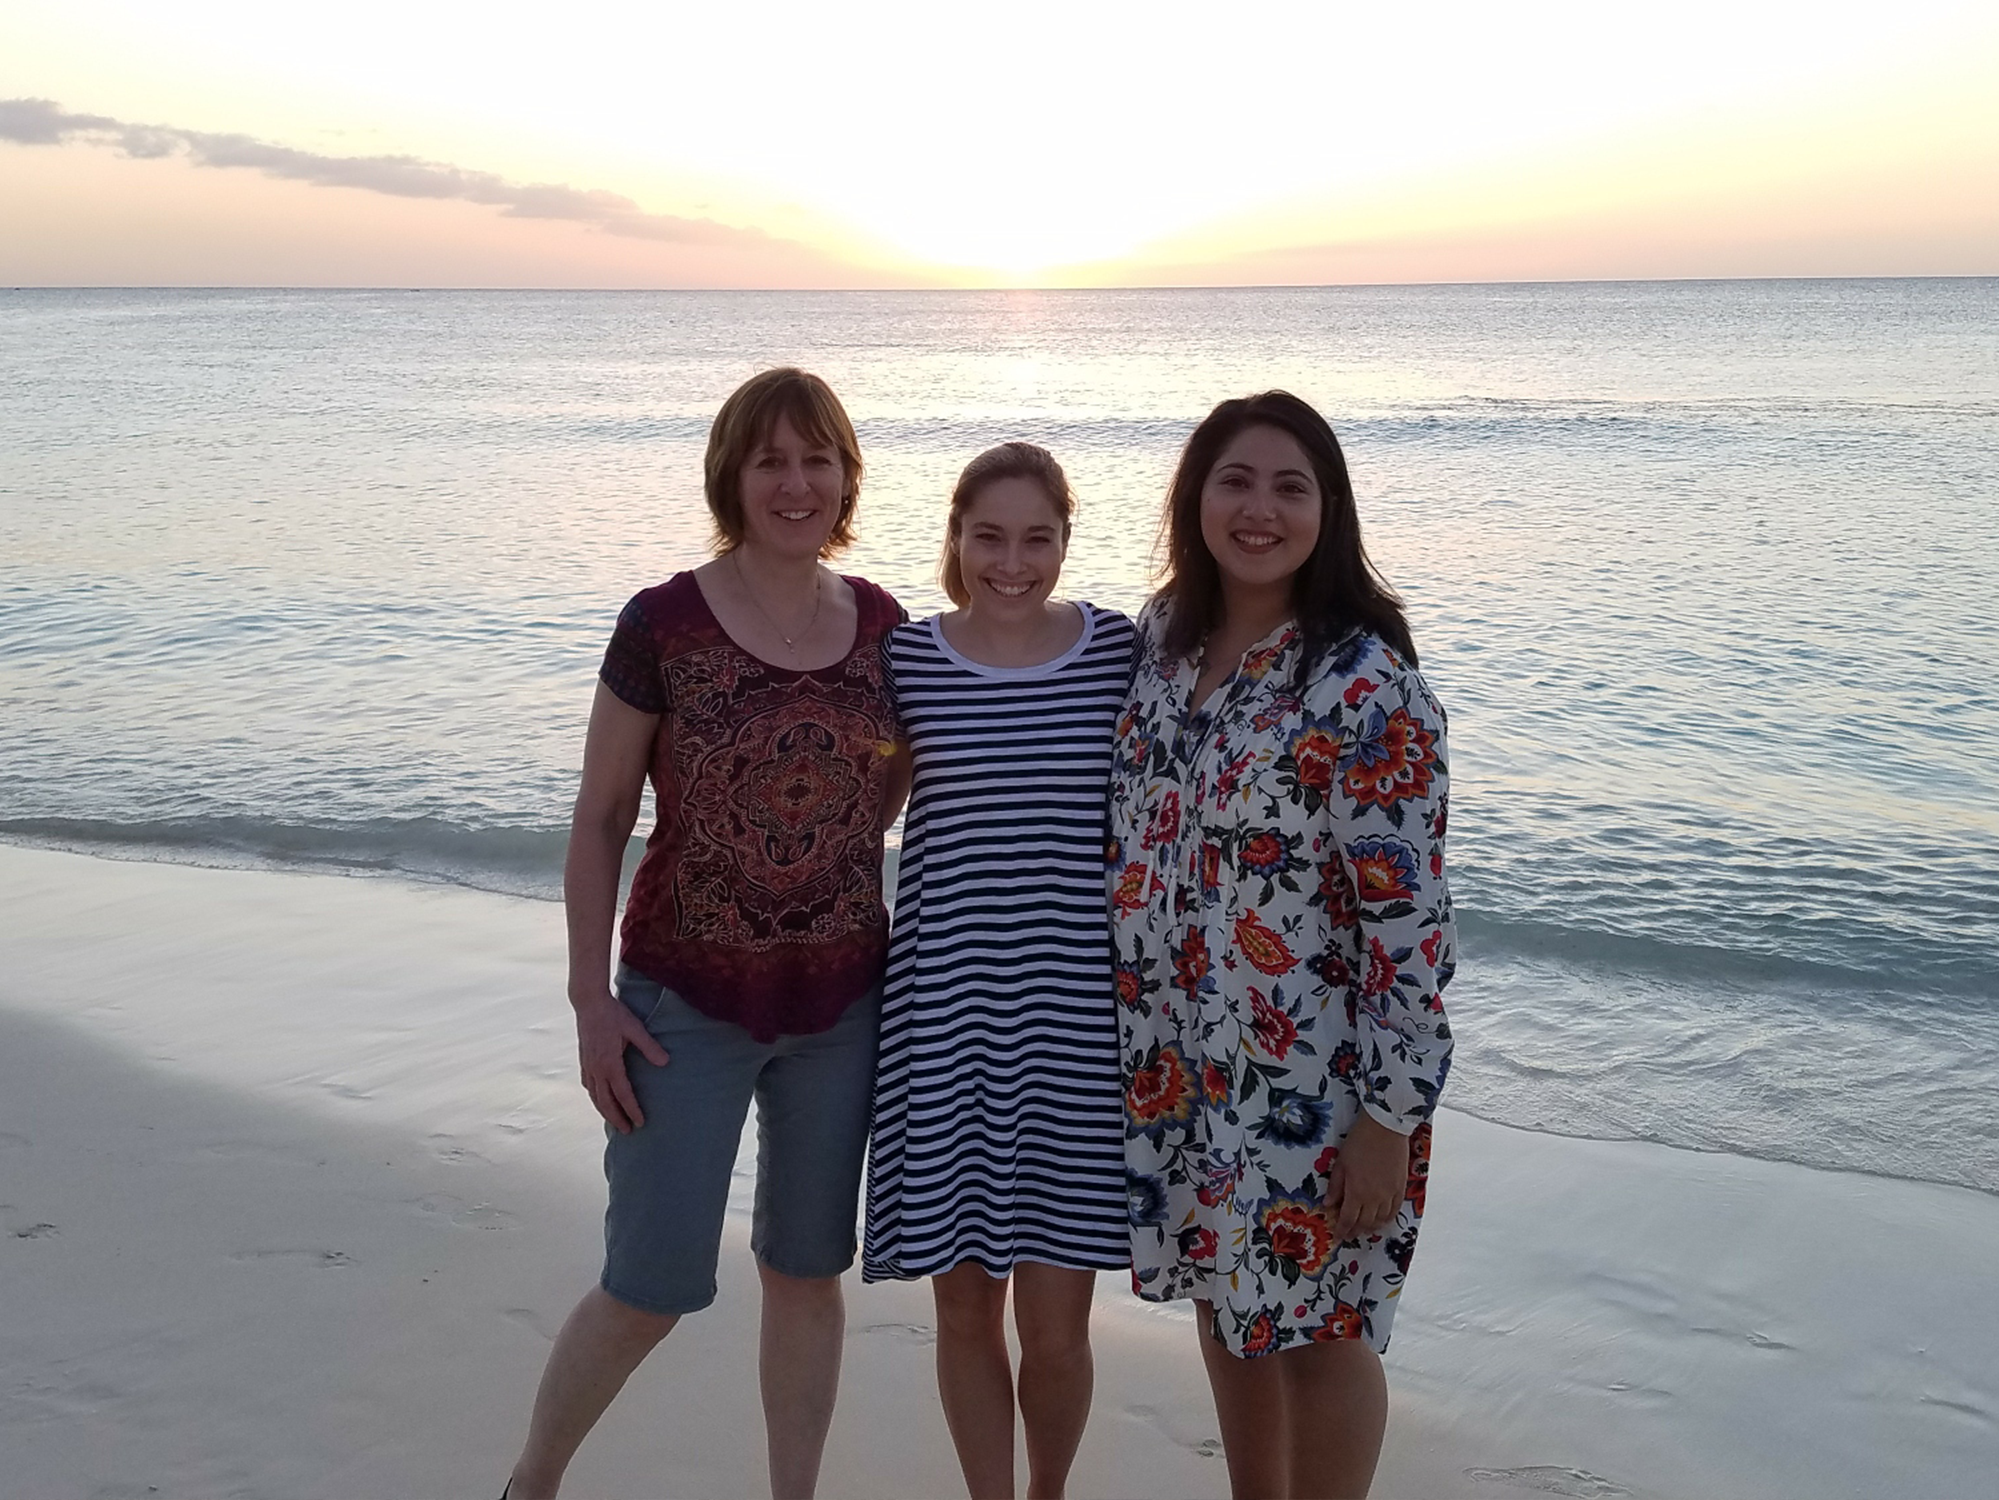 CEHD students in the Cayman Islands